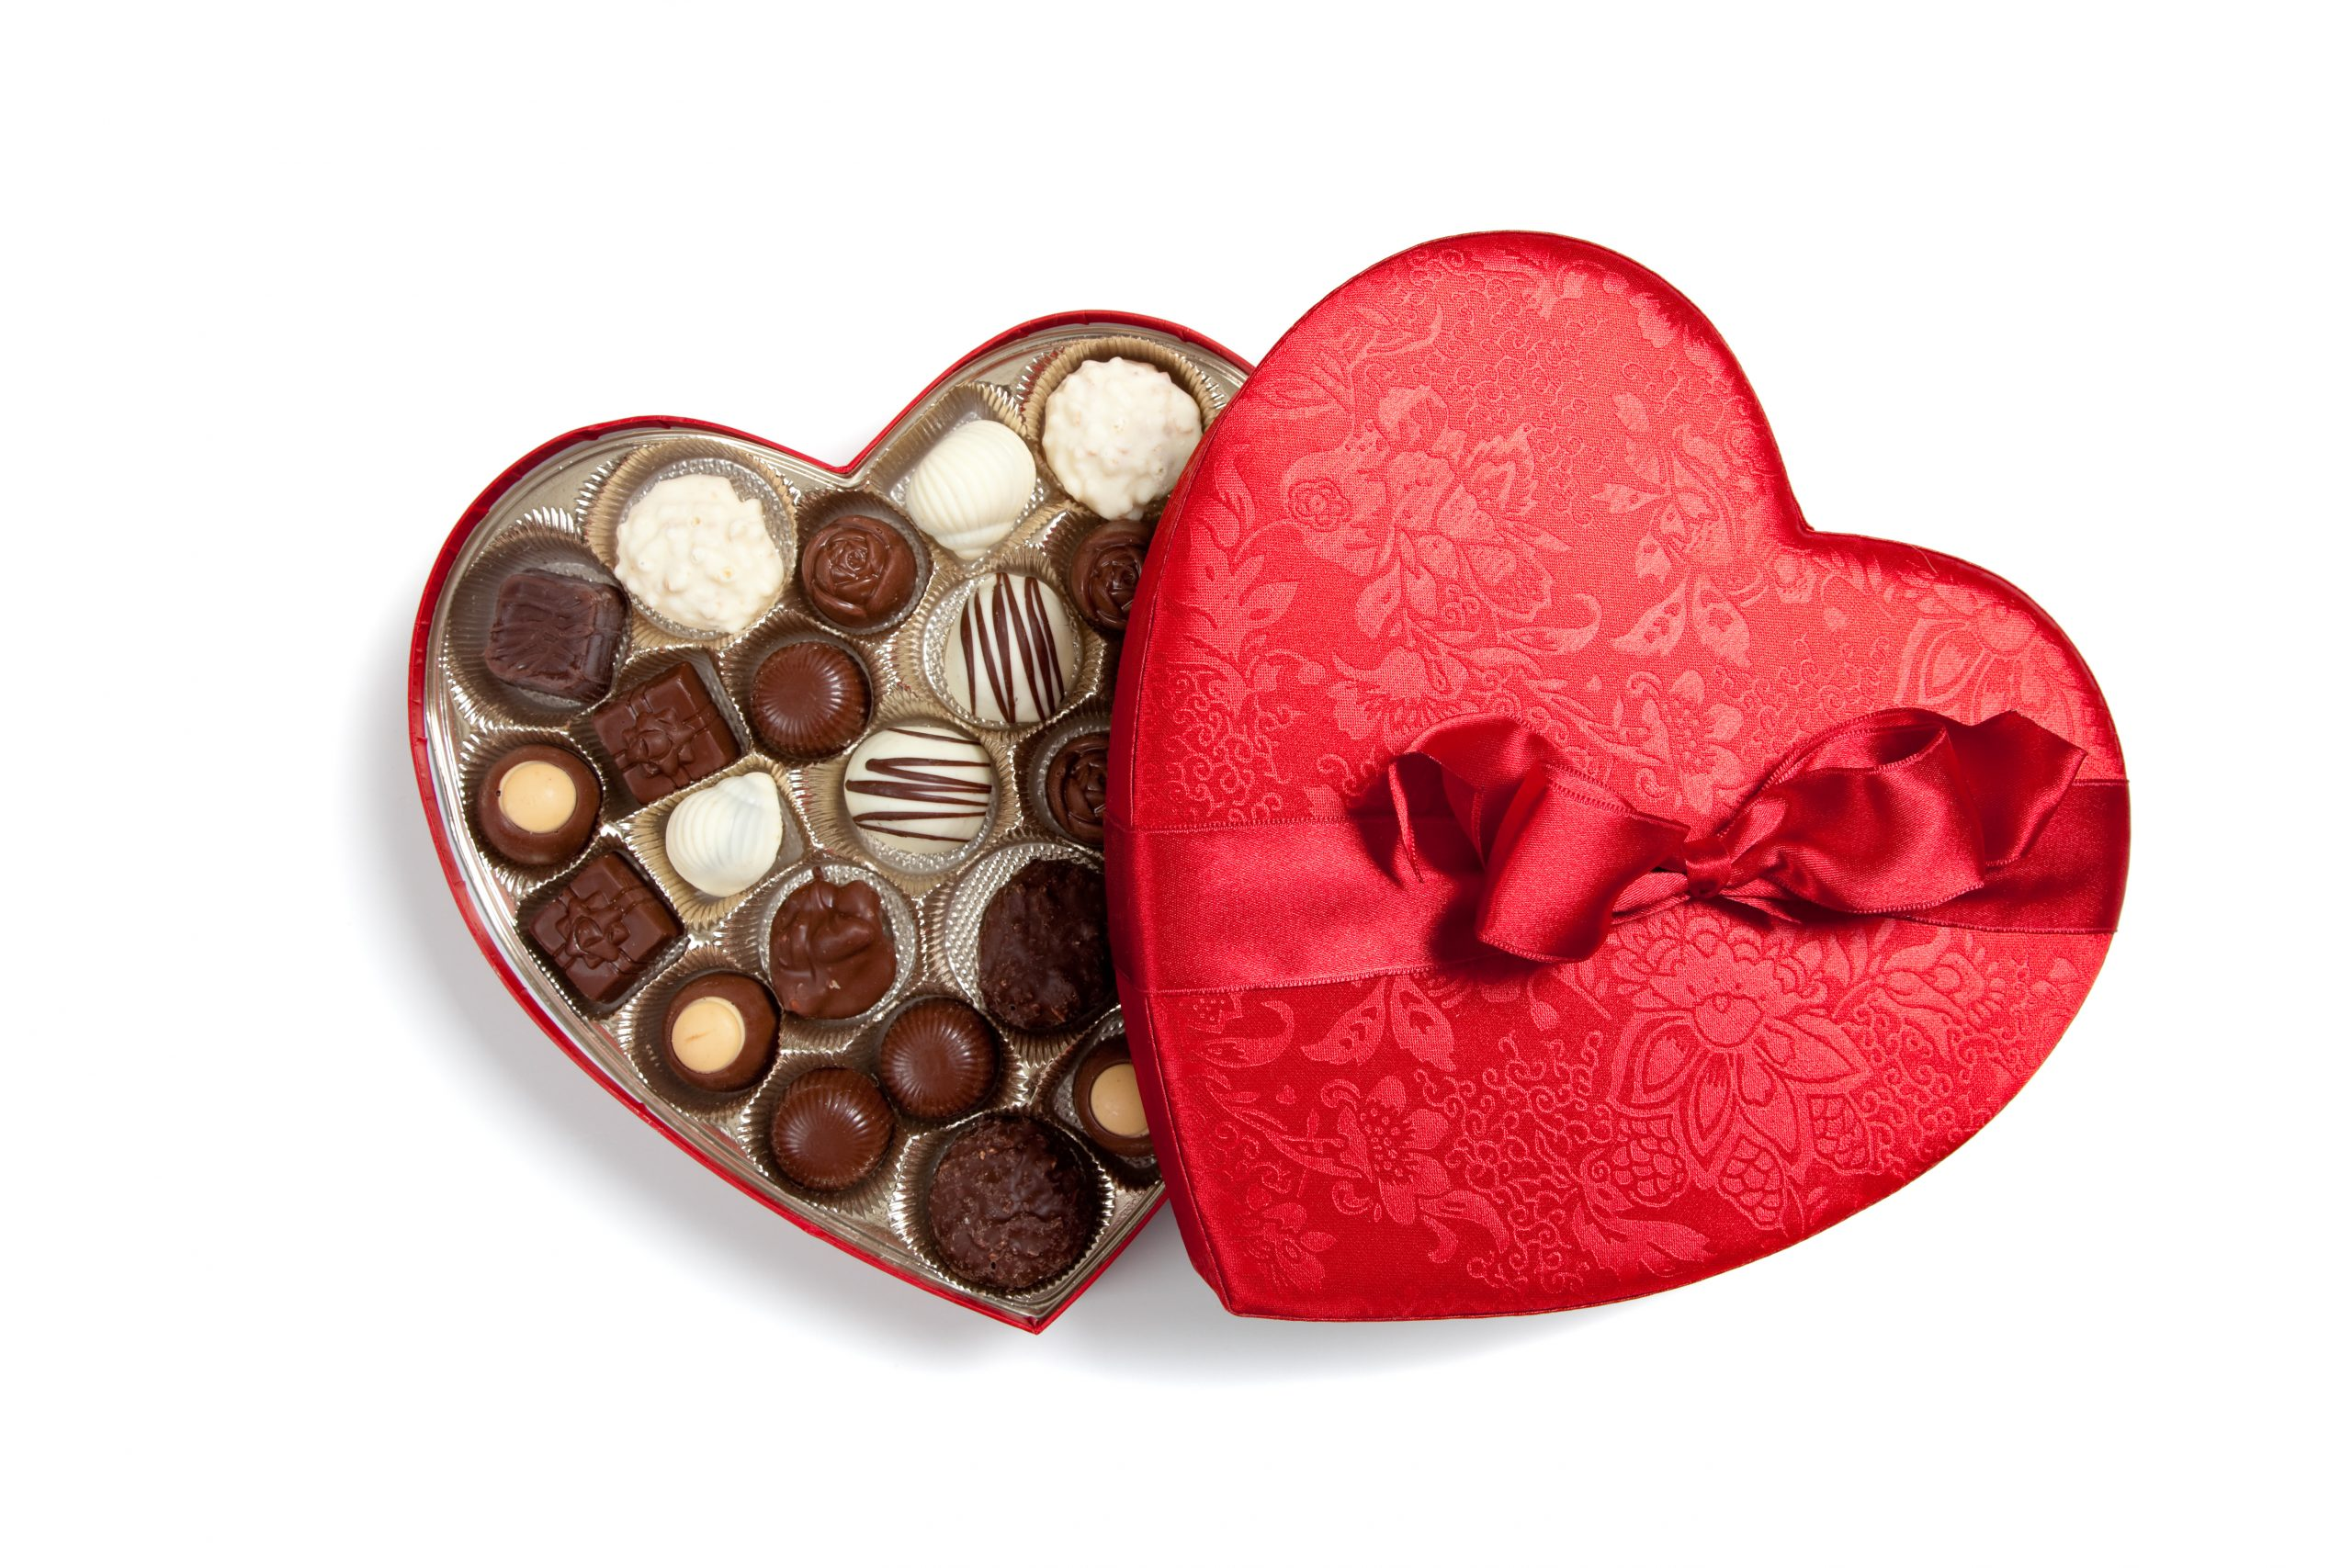 Red heart full of chocolates on white